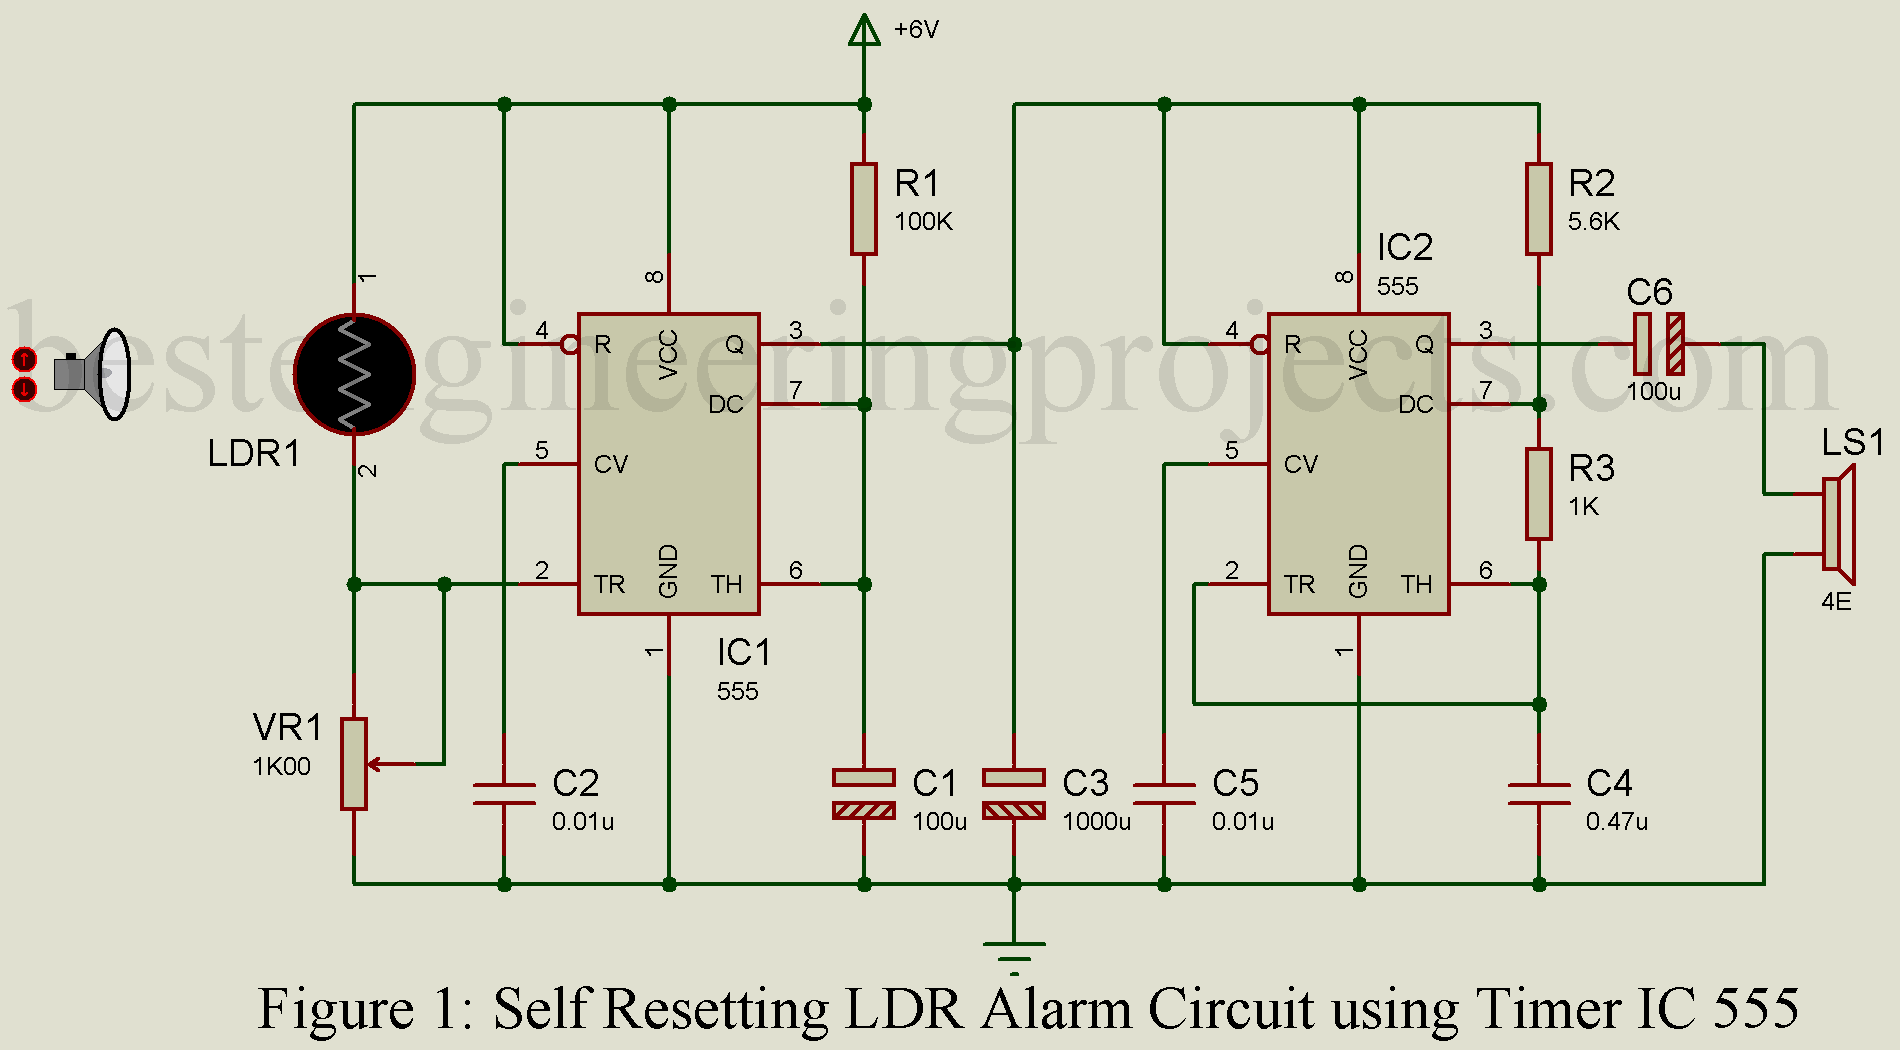 hight resolution of self resetting ldr alarm using timer ic 555 engineering projects burglar preventer alarm using ic 555 circuit schematic diagram